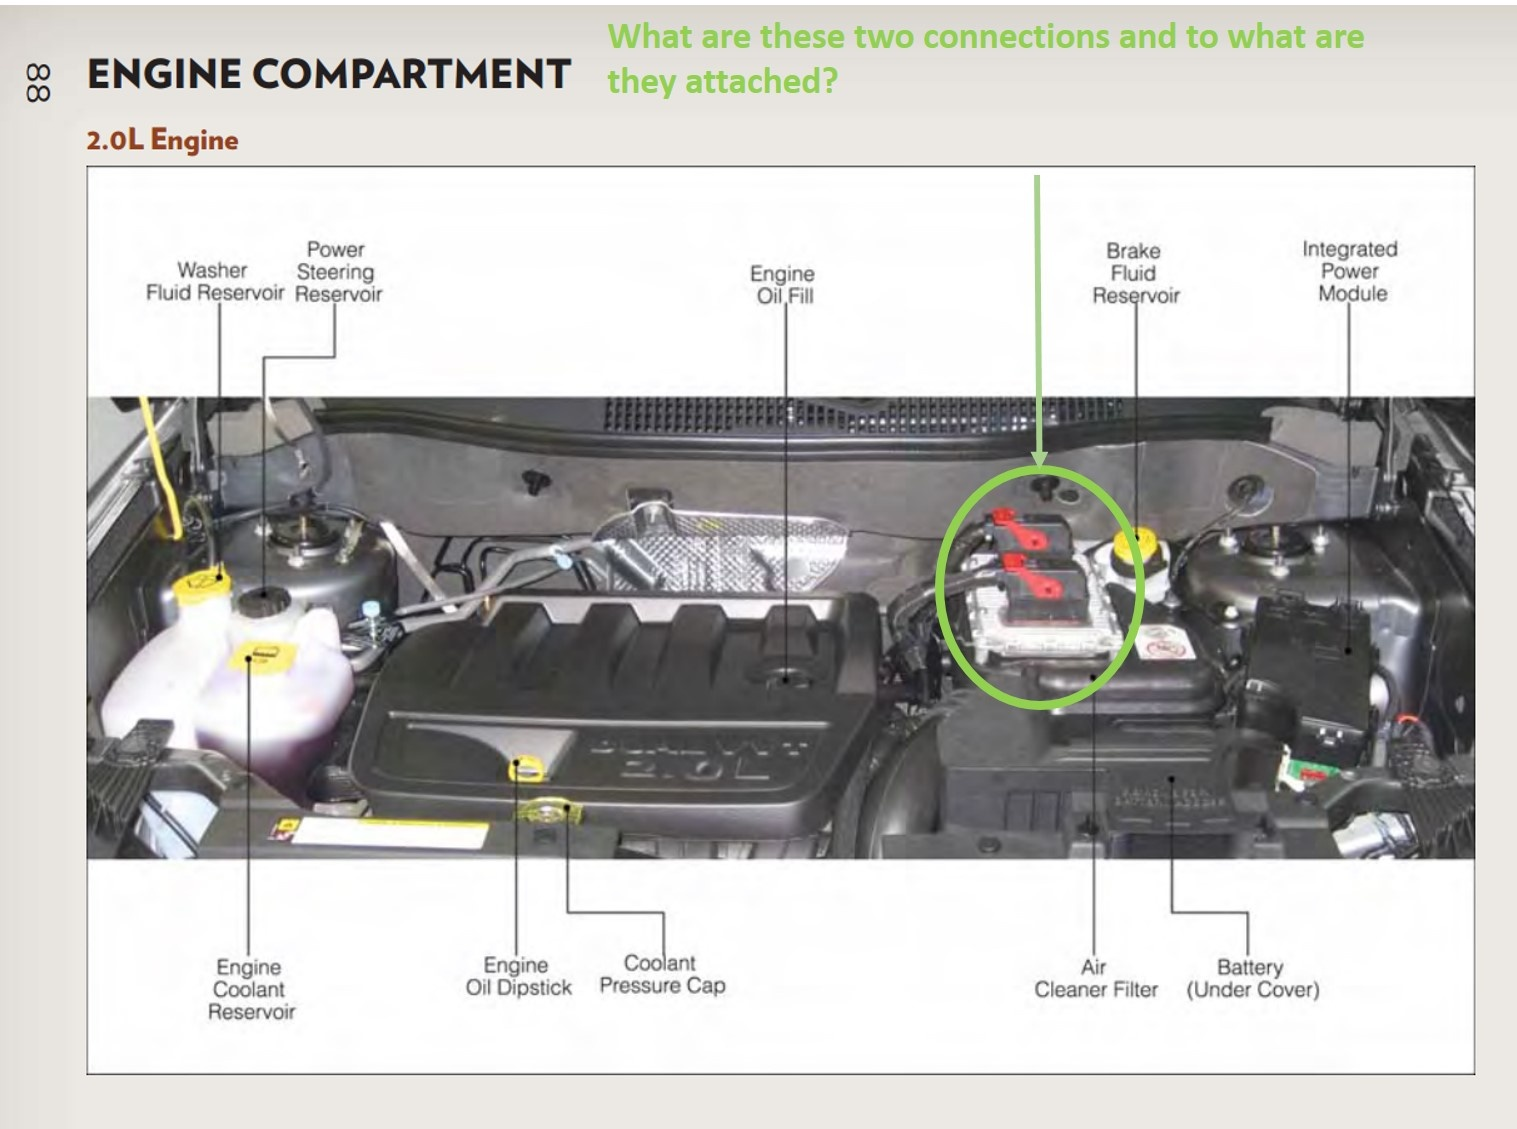 jeep compass questions what are the connections under the hood rh cargurus com 2007 Jeep Compass Fuse Box Diagram 2007 Jeep Compass Fuse Box Diagram